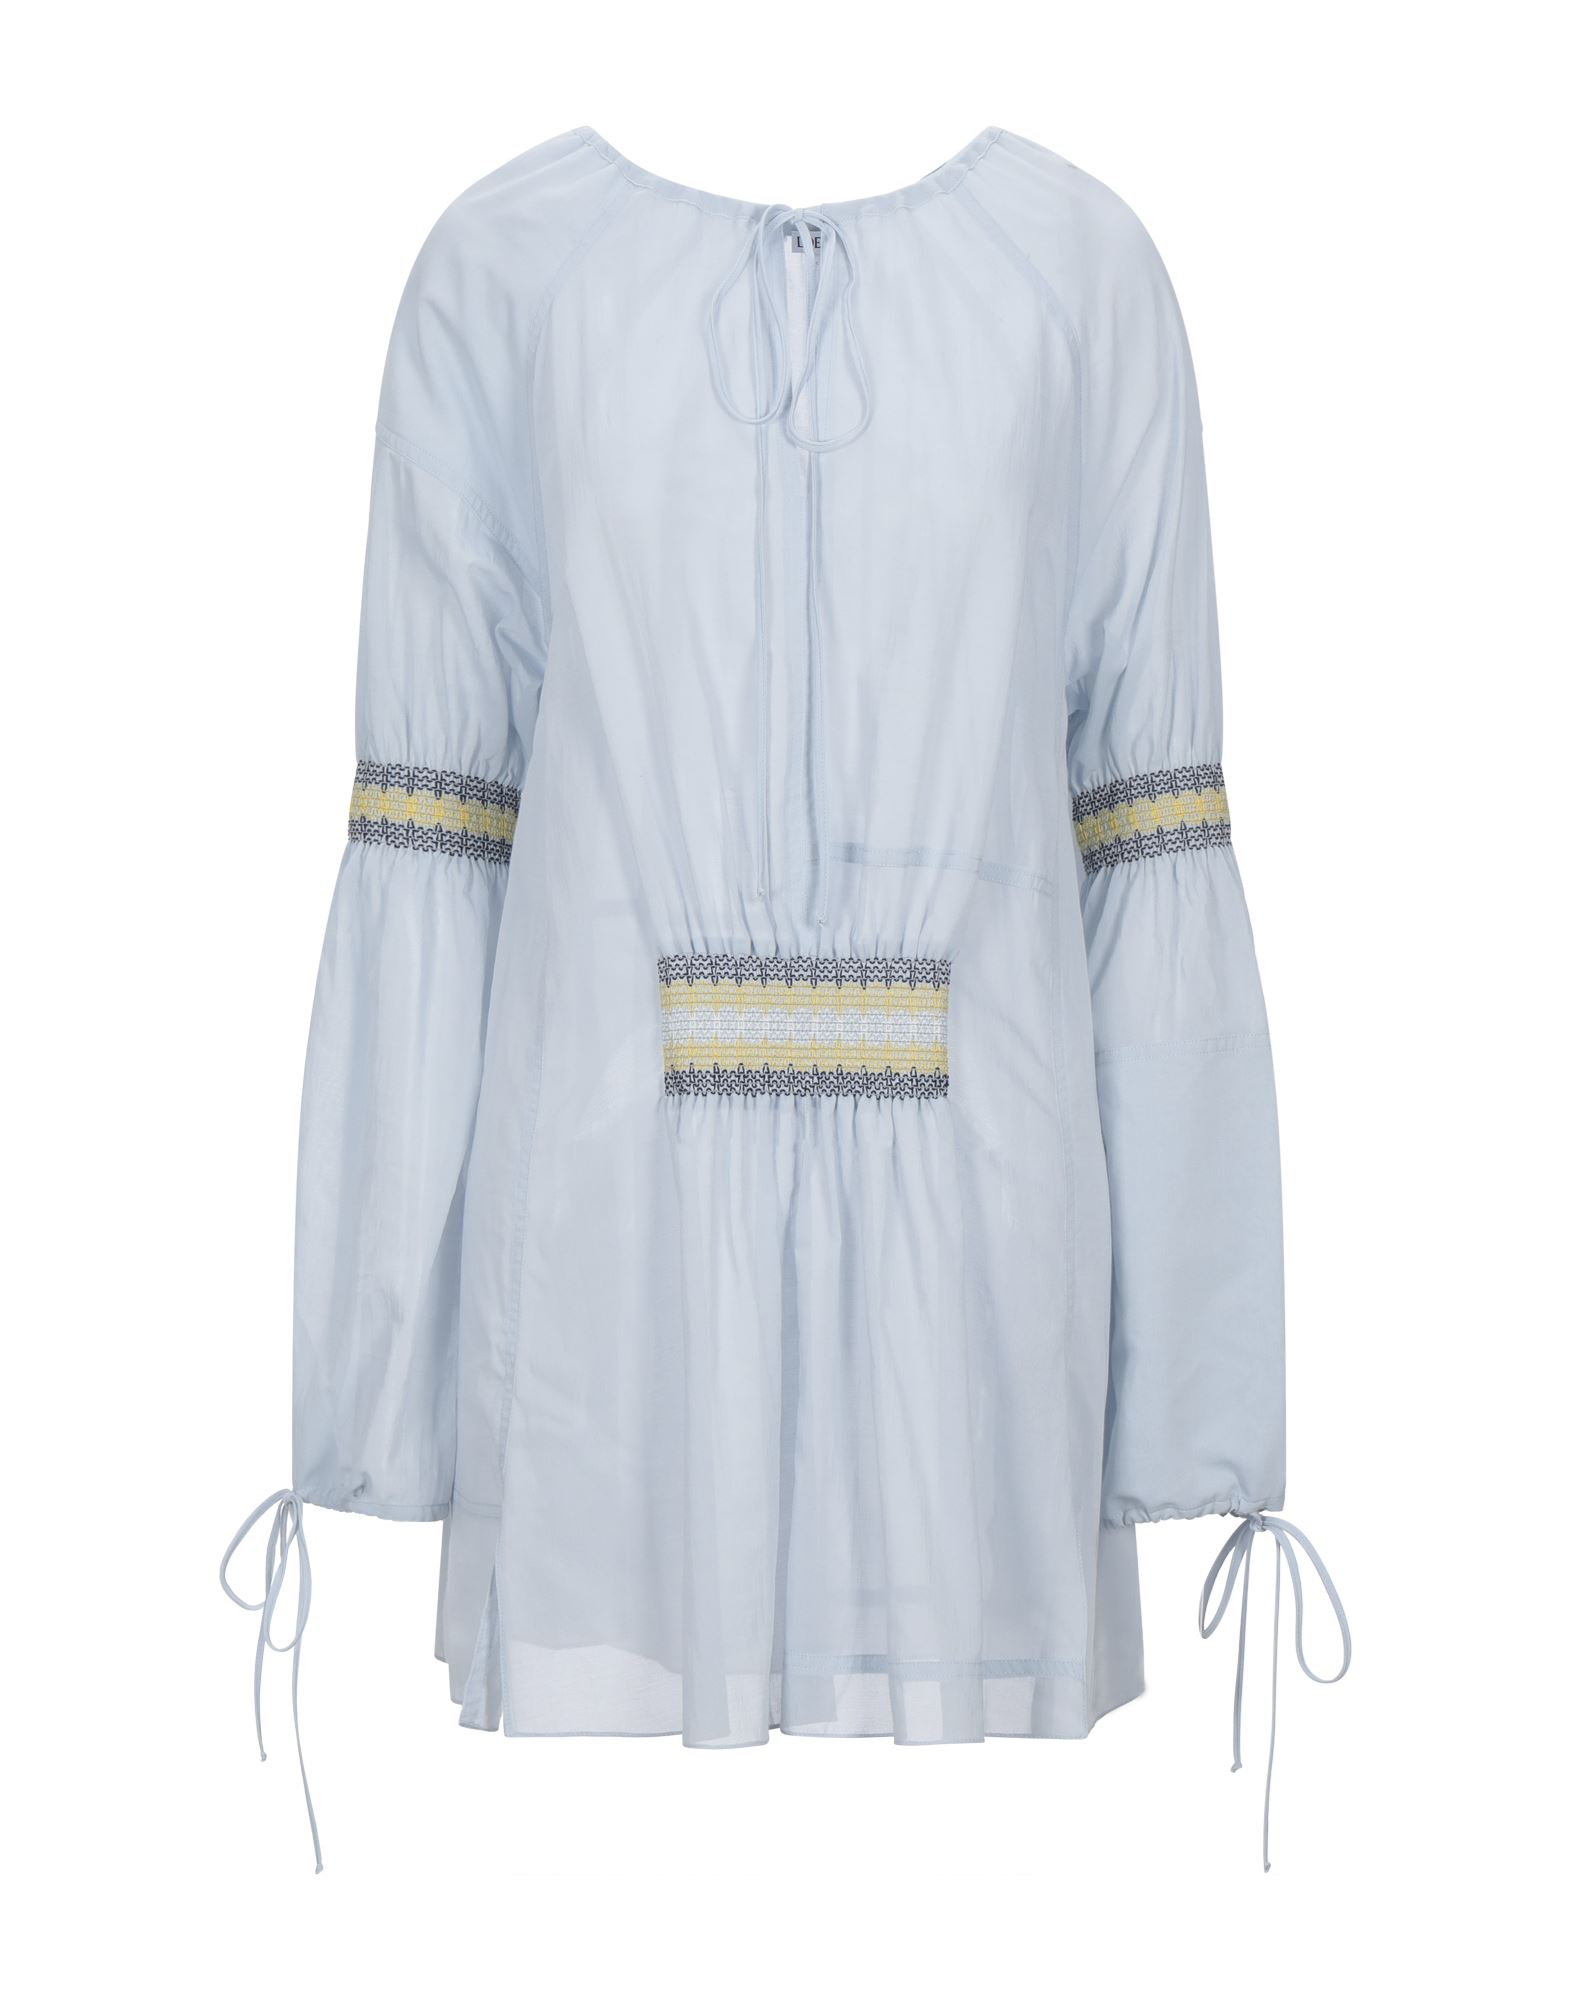 LOEWE Kaftans. crepe, embroidered detailing, laces, solid color, long sleeves, bow collar, no pockets. 54% Cotton, 46% Polyester